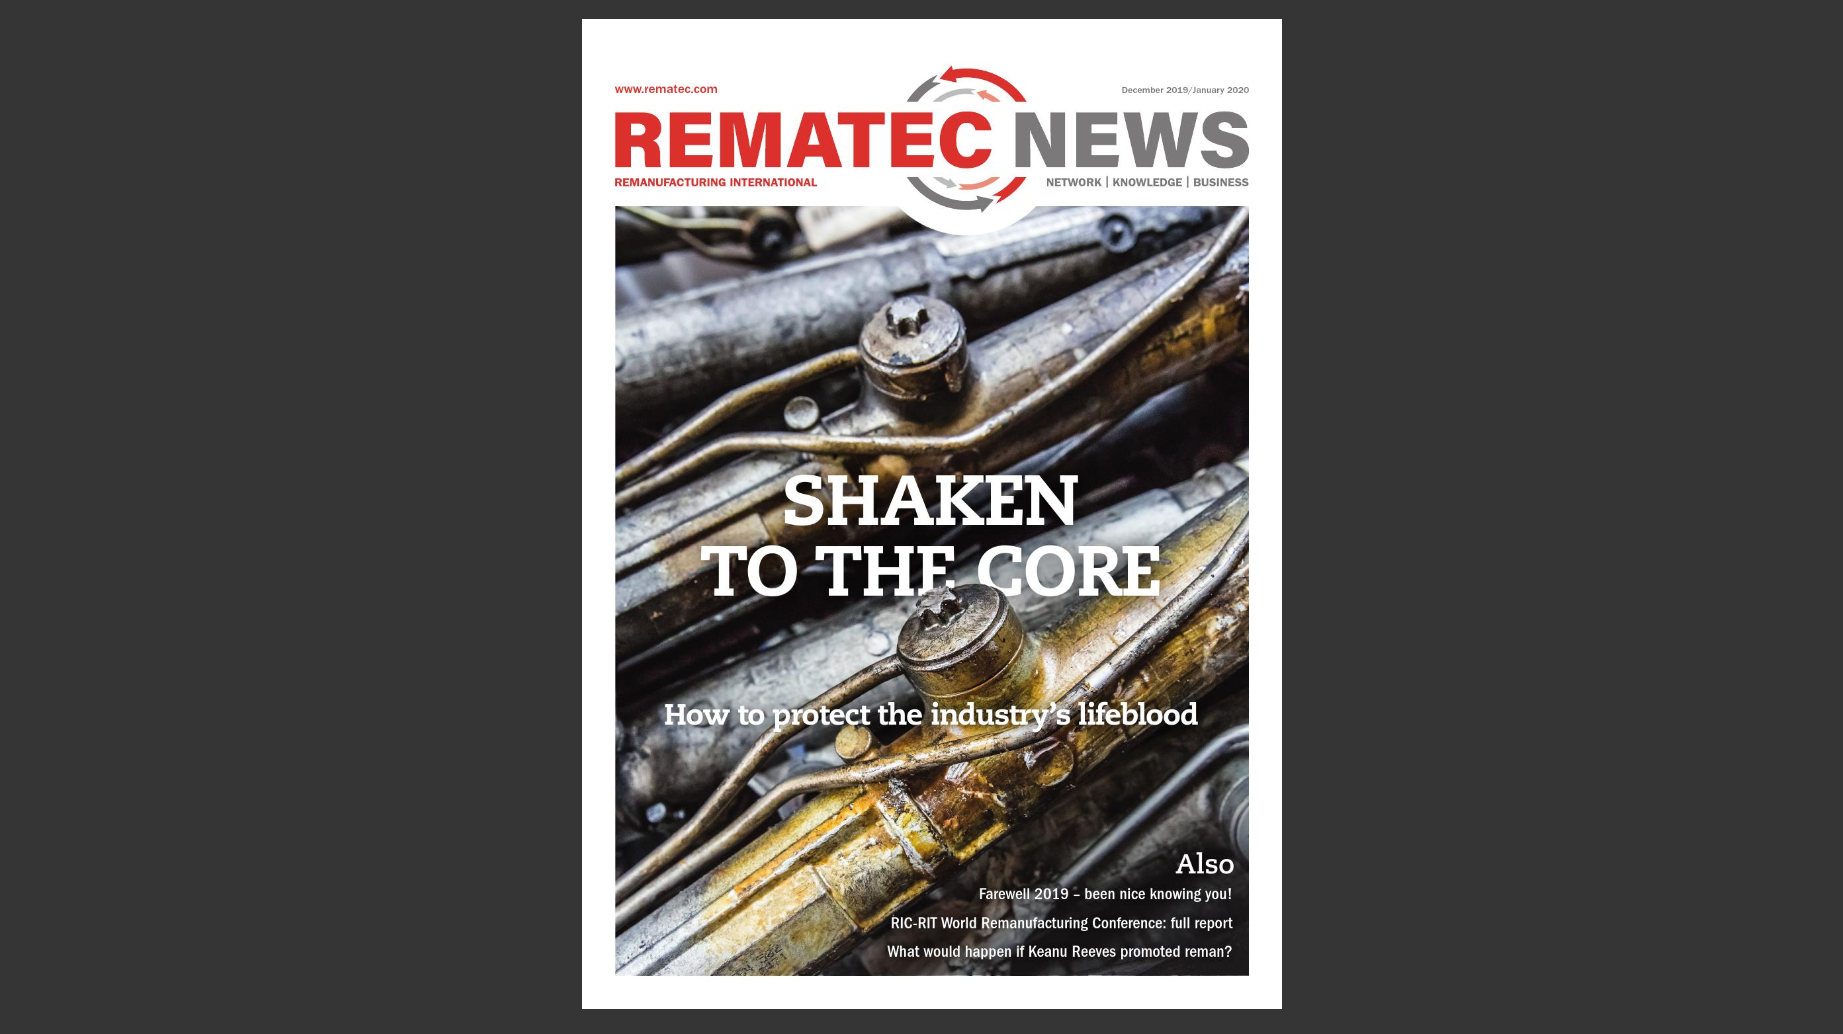 Latest edition Rematec News: Shaken to the core